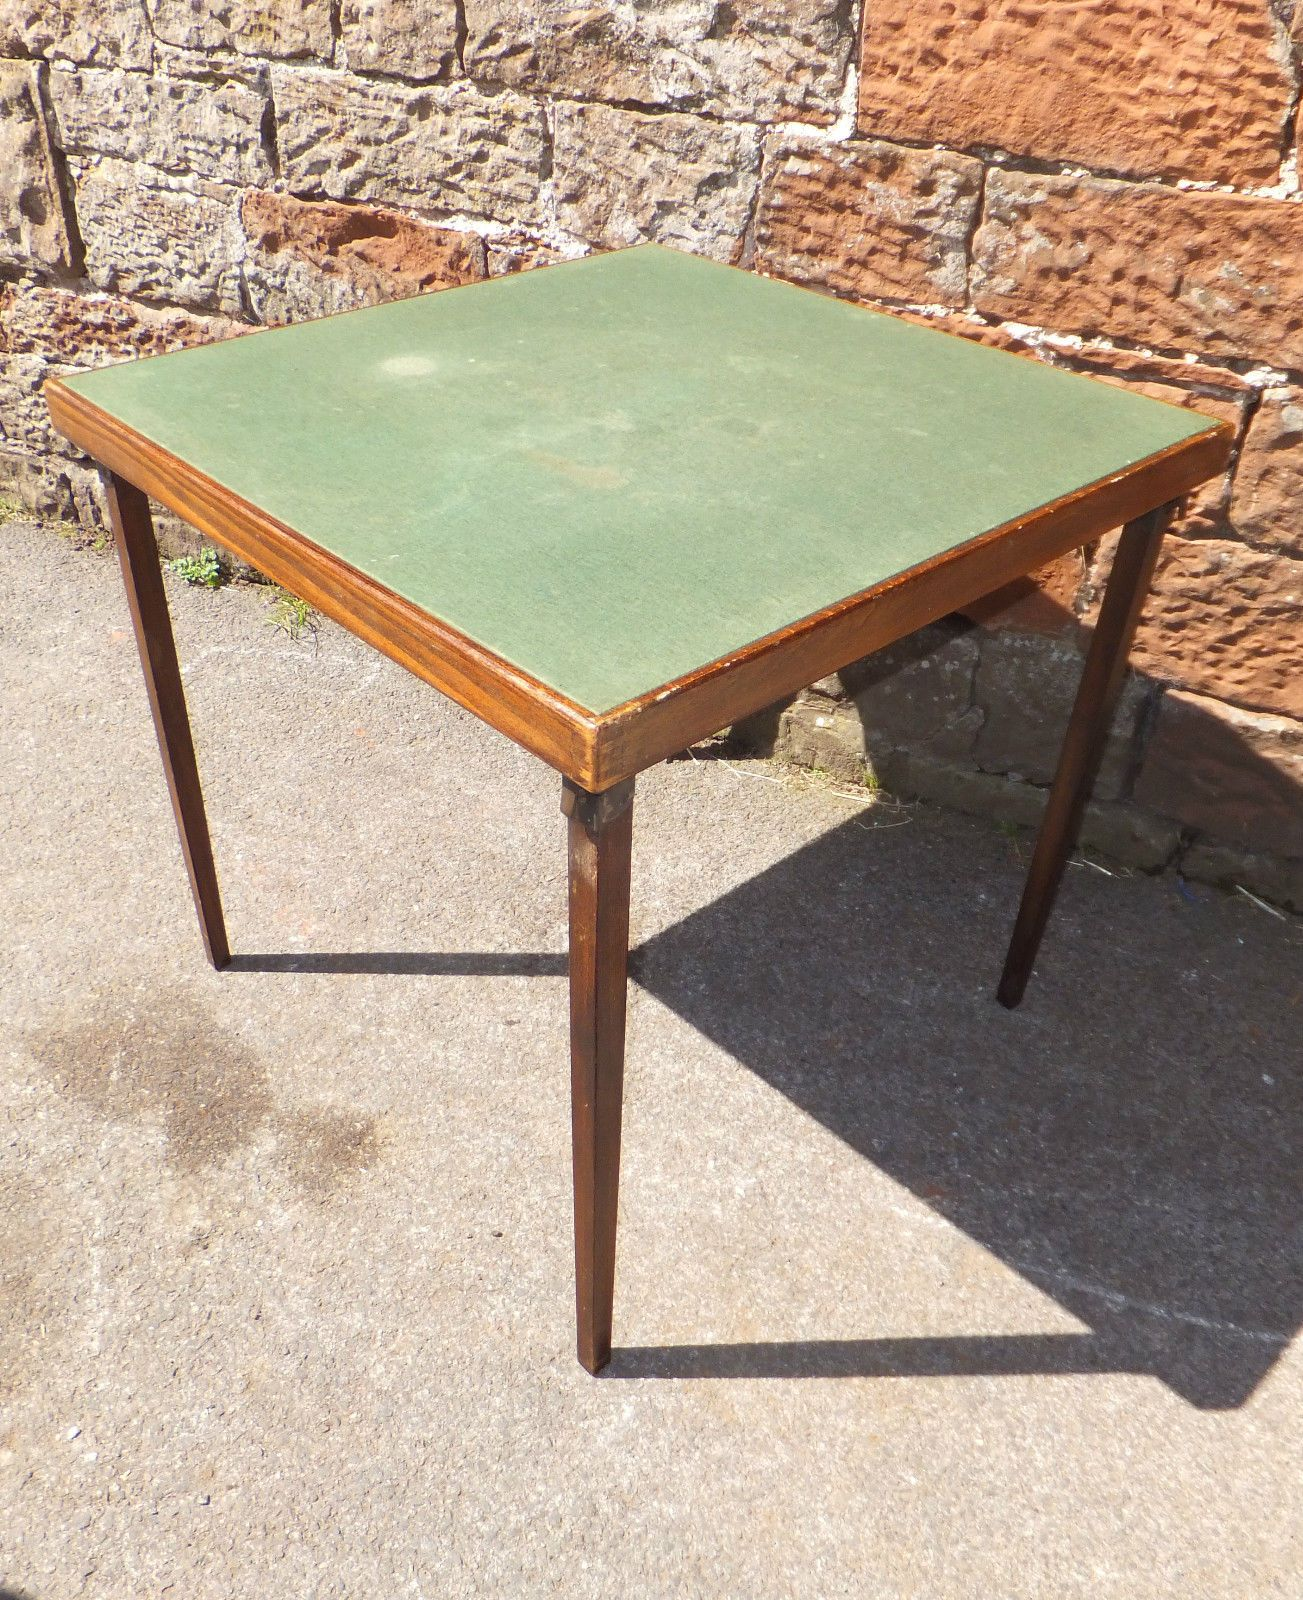 Vono Green Folding Card Table Thirty Inches Green Baize Square Top 29 99 Table Table Cards Table Games